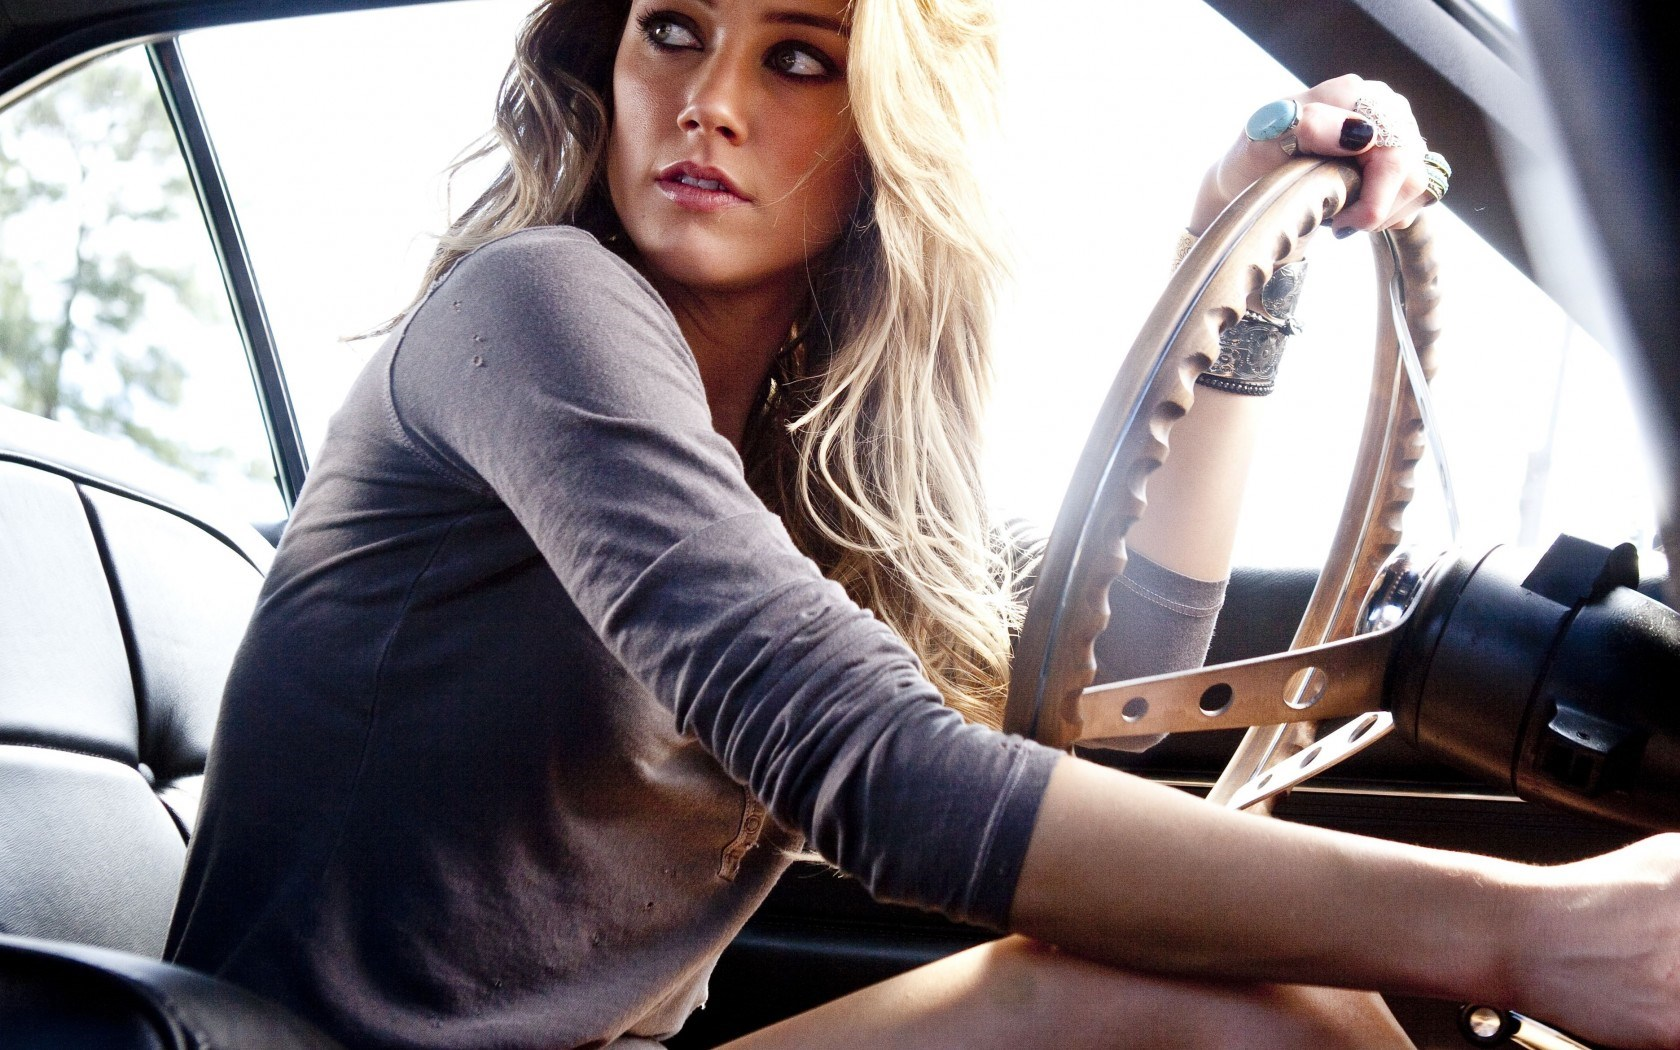 Car Amber Heard Actress Blonde Girl